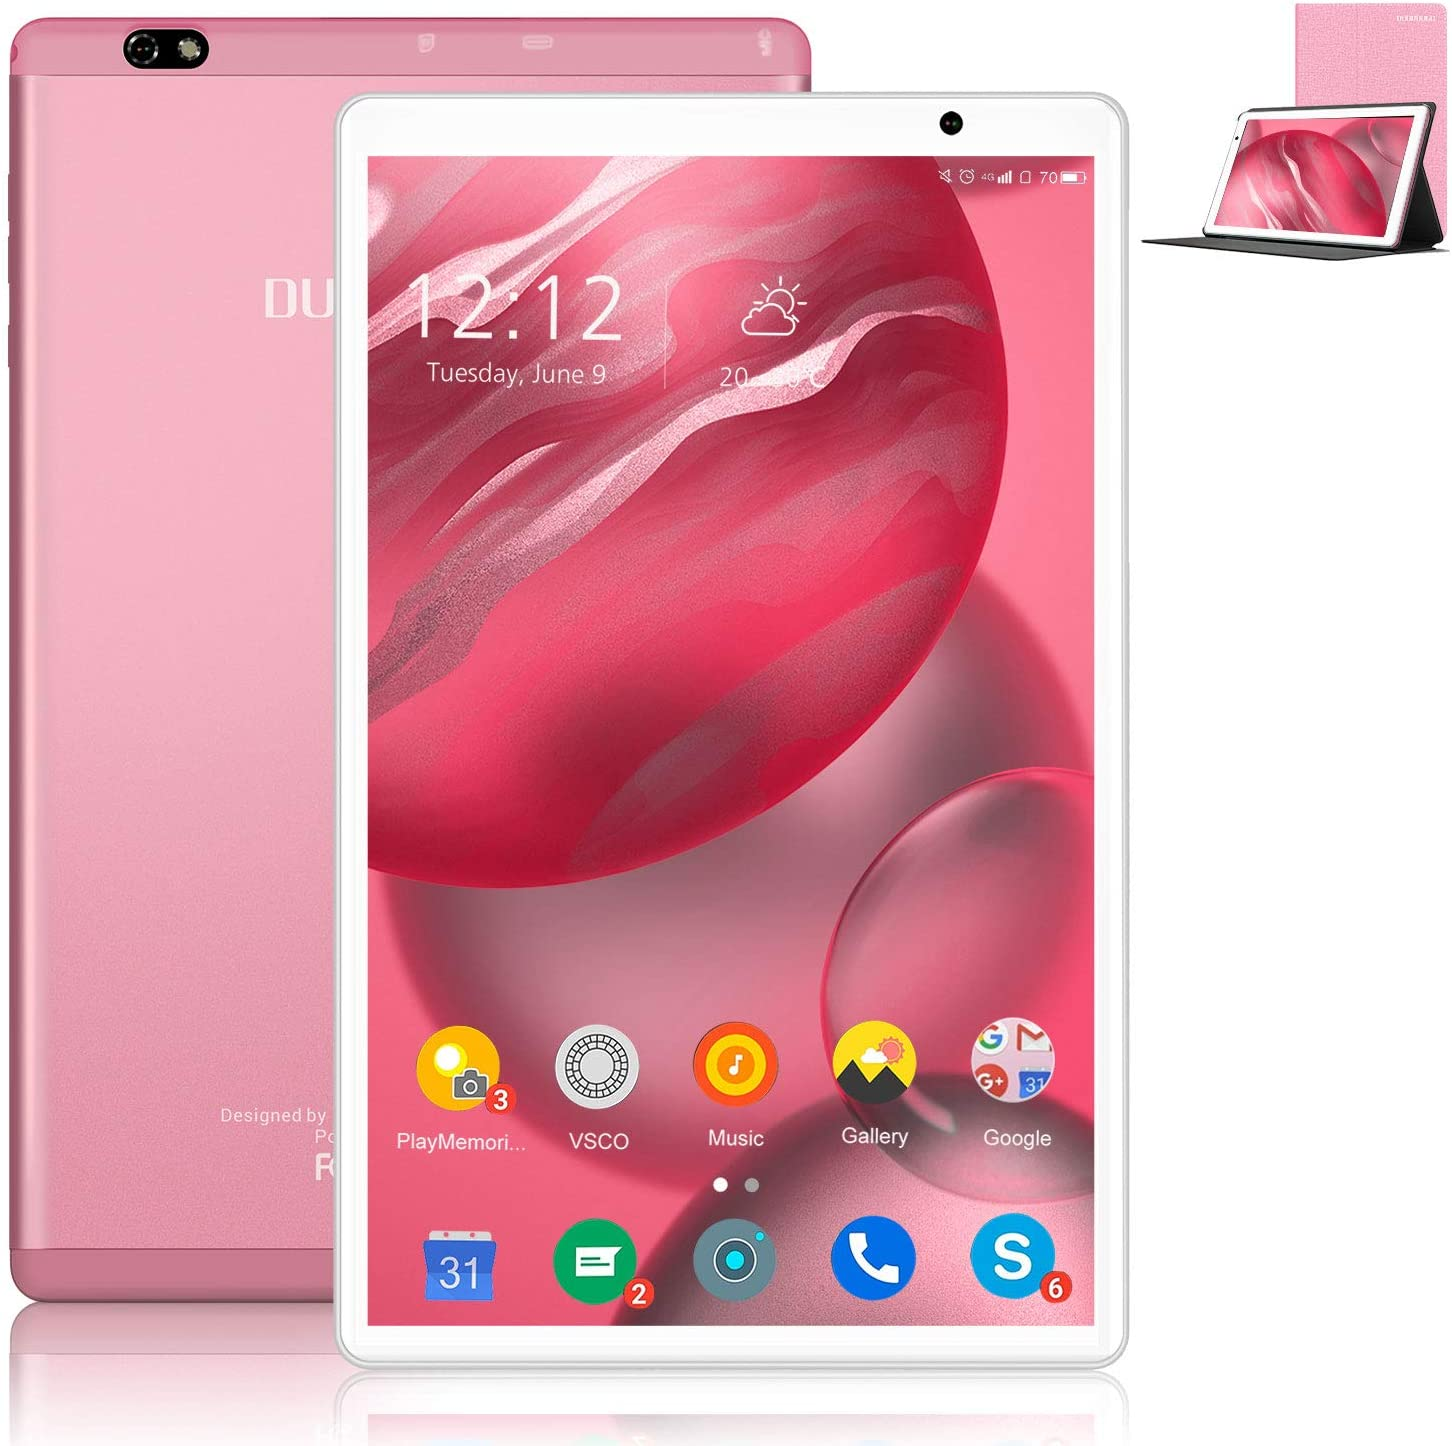 10 Inch Tablet Android 10.0, Octa-Core 1.5Ghz Tablets 64GB ROM (128GB Expansion) 4GB RAM Dual Cameras 8MP 1280800 HD IPS Display, 8000mAh, Wi-Fi, Bluetooth, Google Certified Tablet PC (Rose Gold)